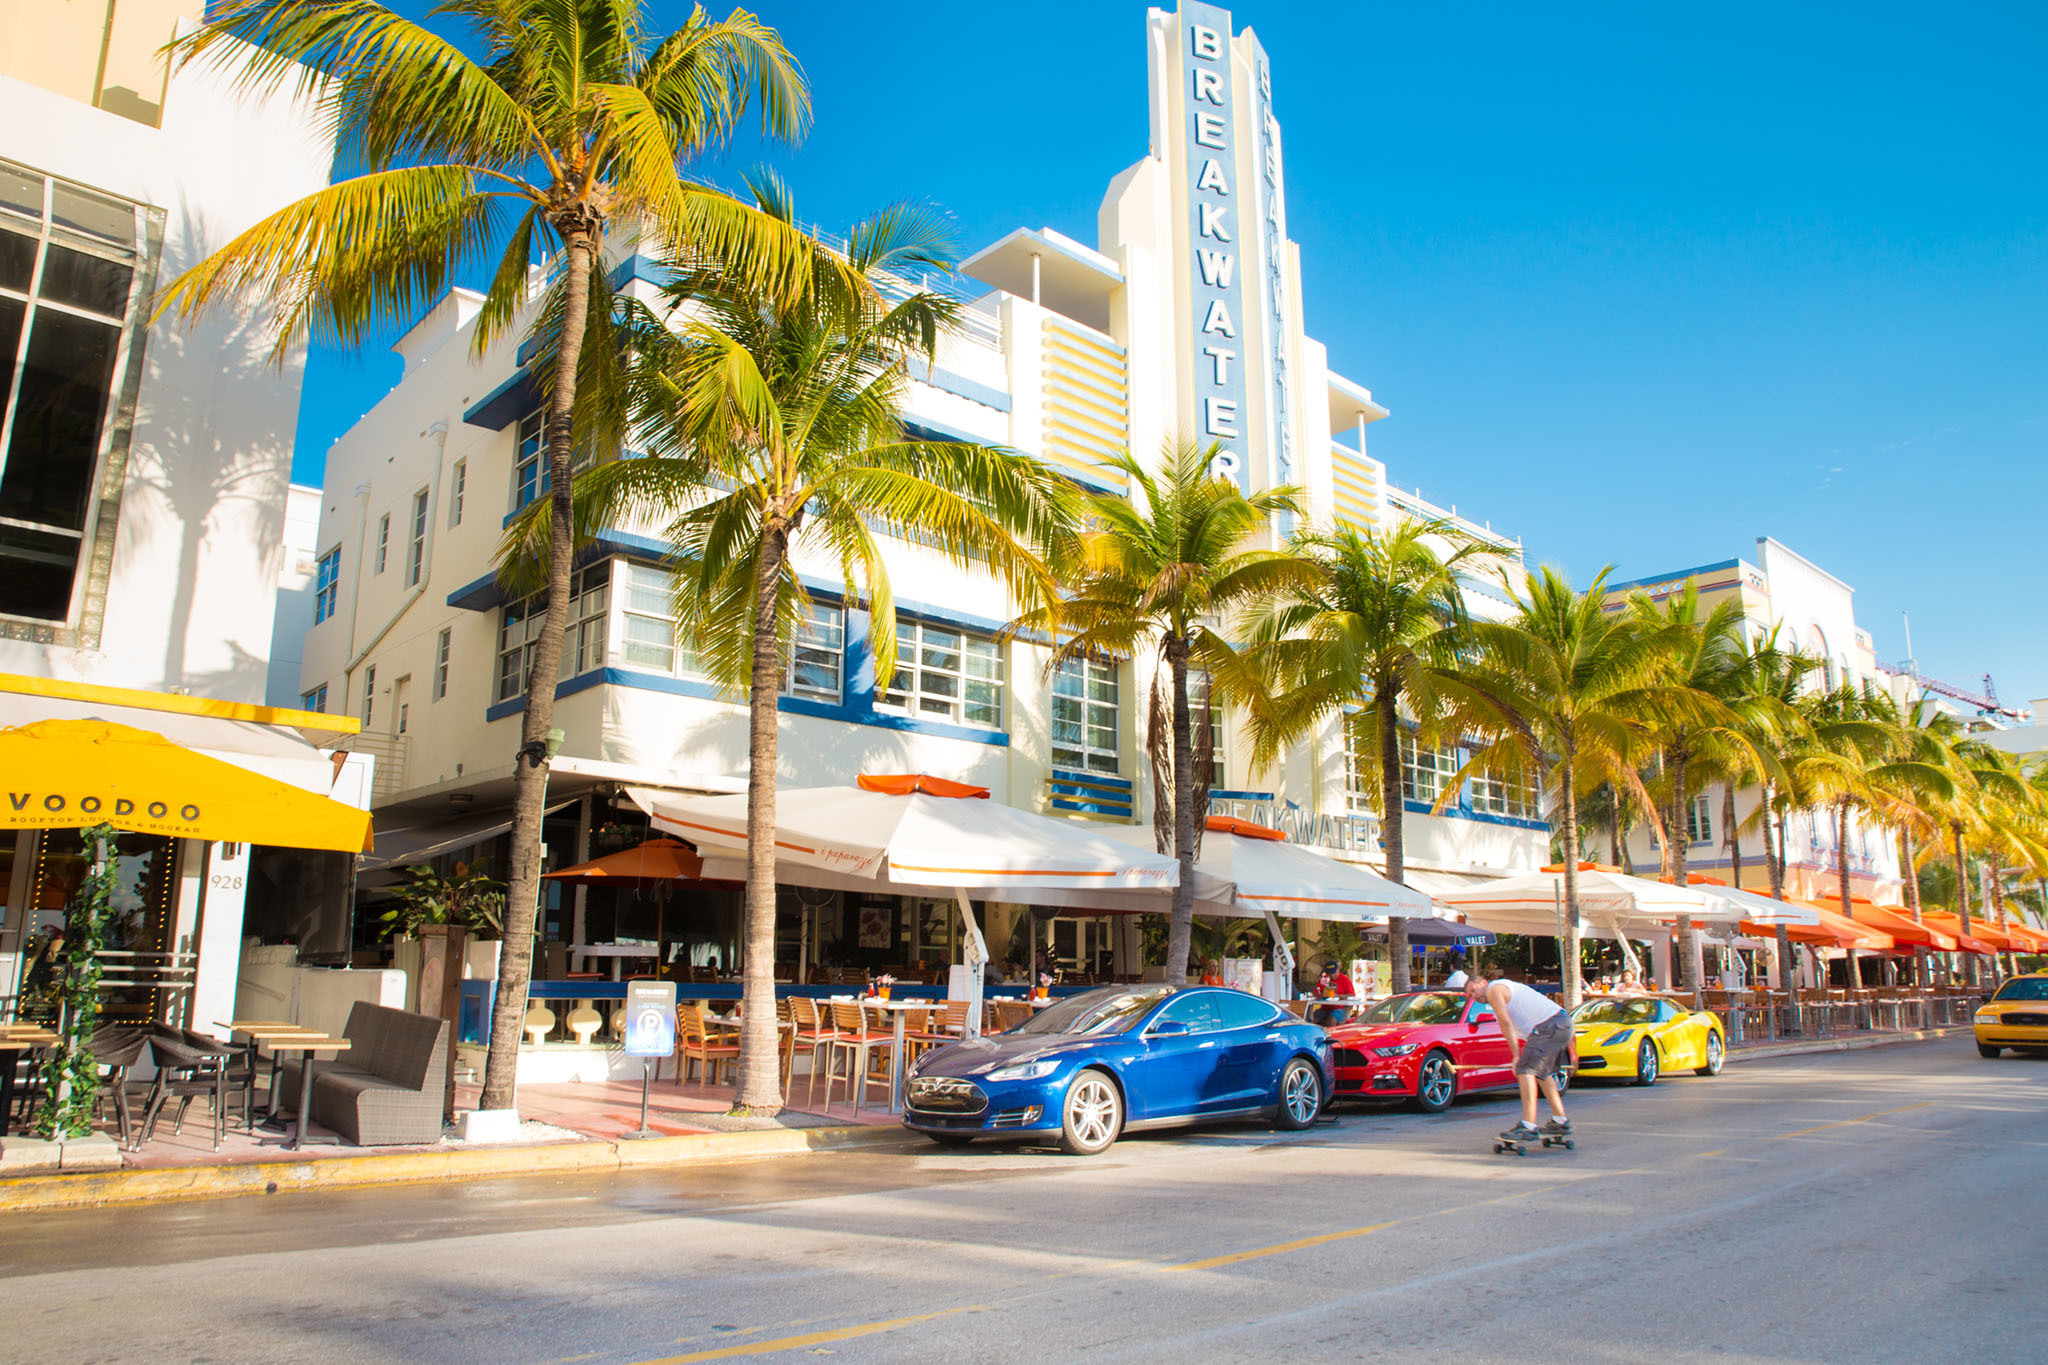 20 best things to do in miami plus 10 fun beaches and attractions